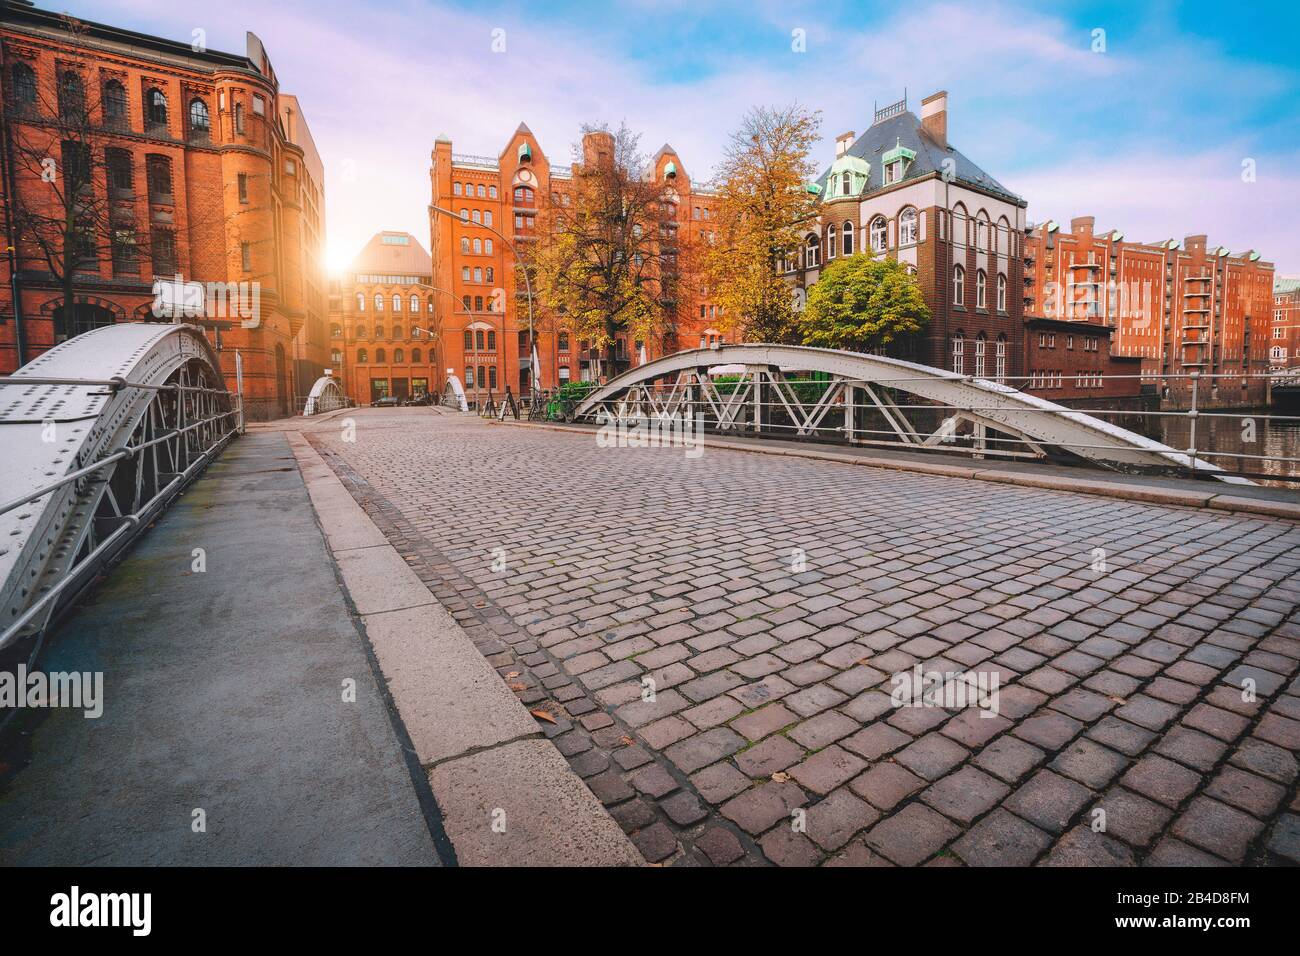 Arch bridge over canals with cobbled street in the warehouse district of Hamburg, Germany, Europe, historic brick building illuminated by golden sunset Stock Photo